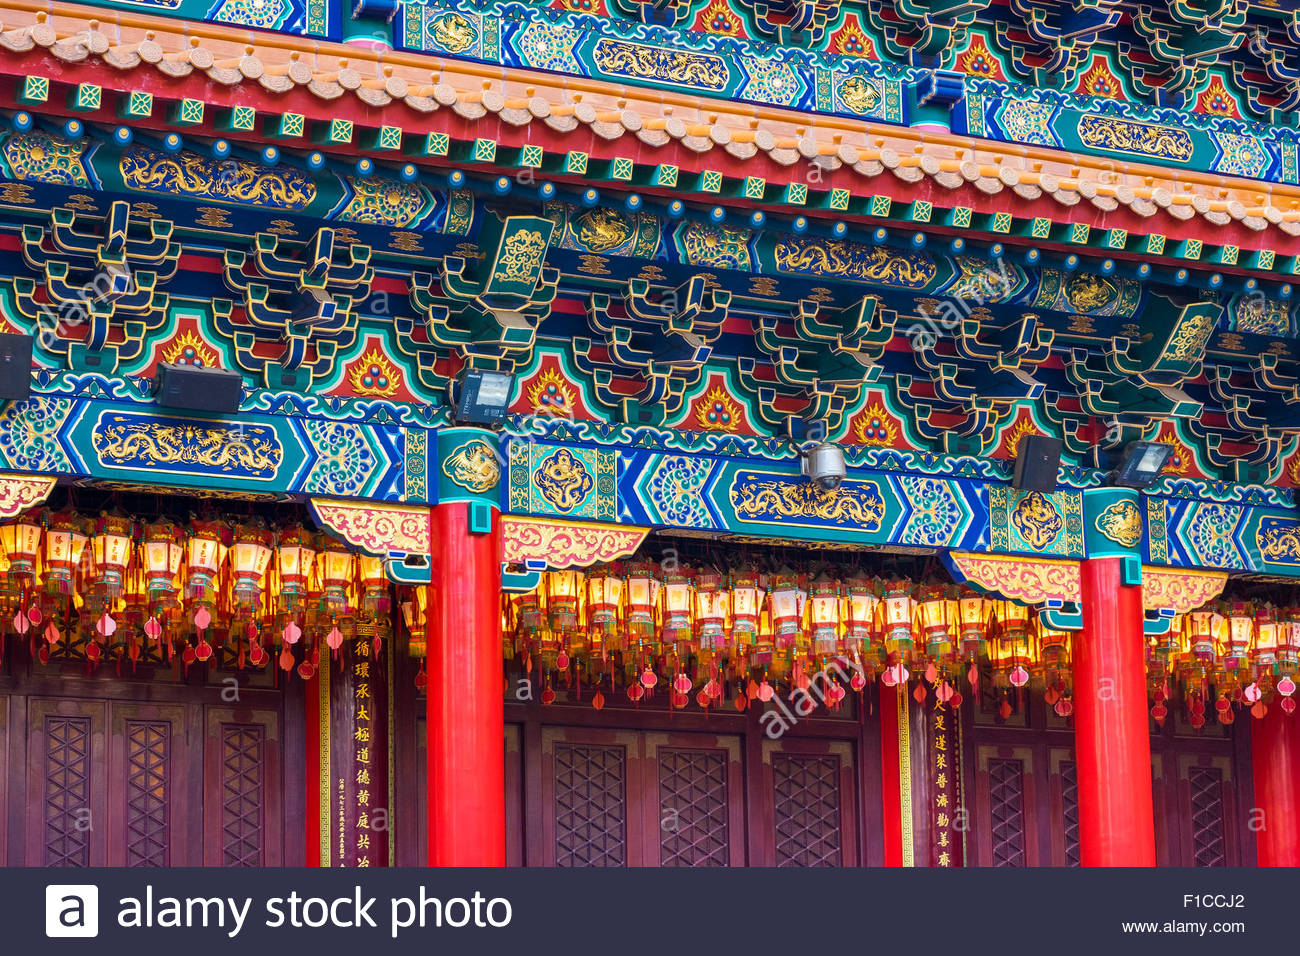 Detail of main altar house at Wong Tai Sin (Sik Sik Yuen) Temple, Wong Tai Sin district, Kowloon, Hong Kong, China - Stock Image